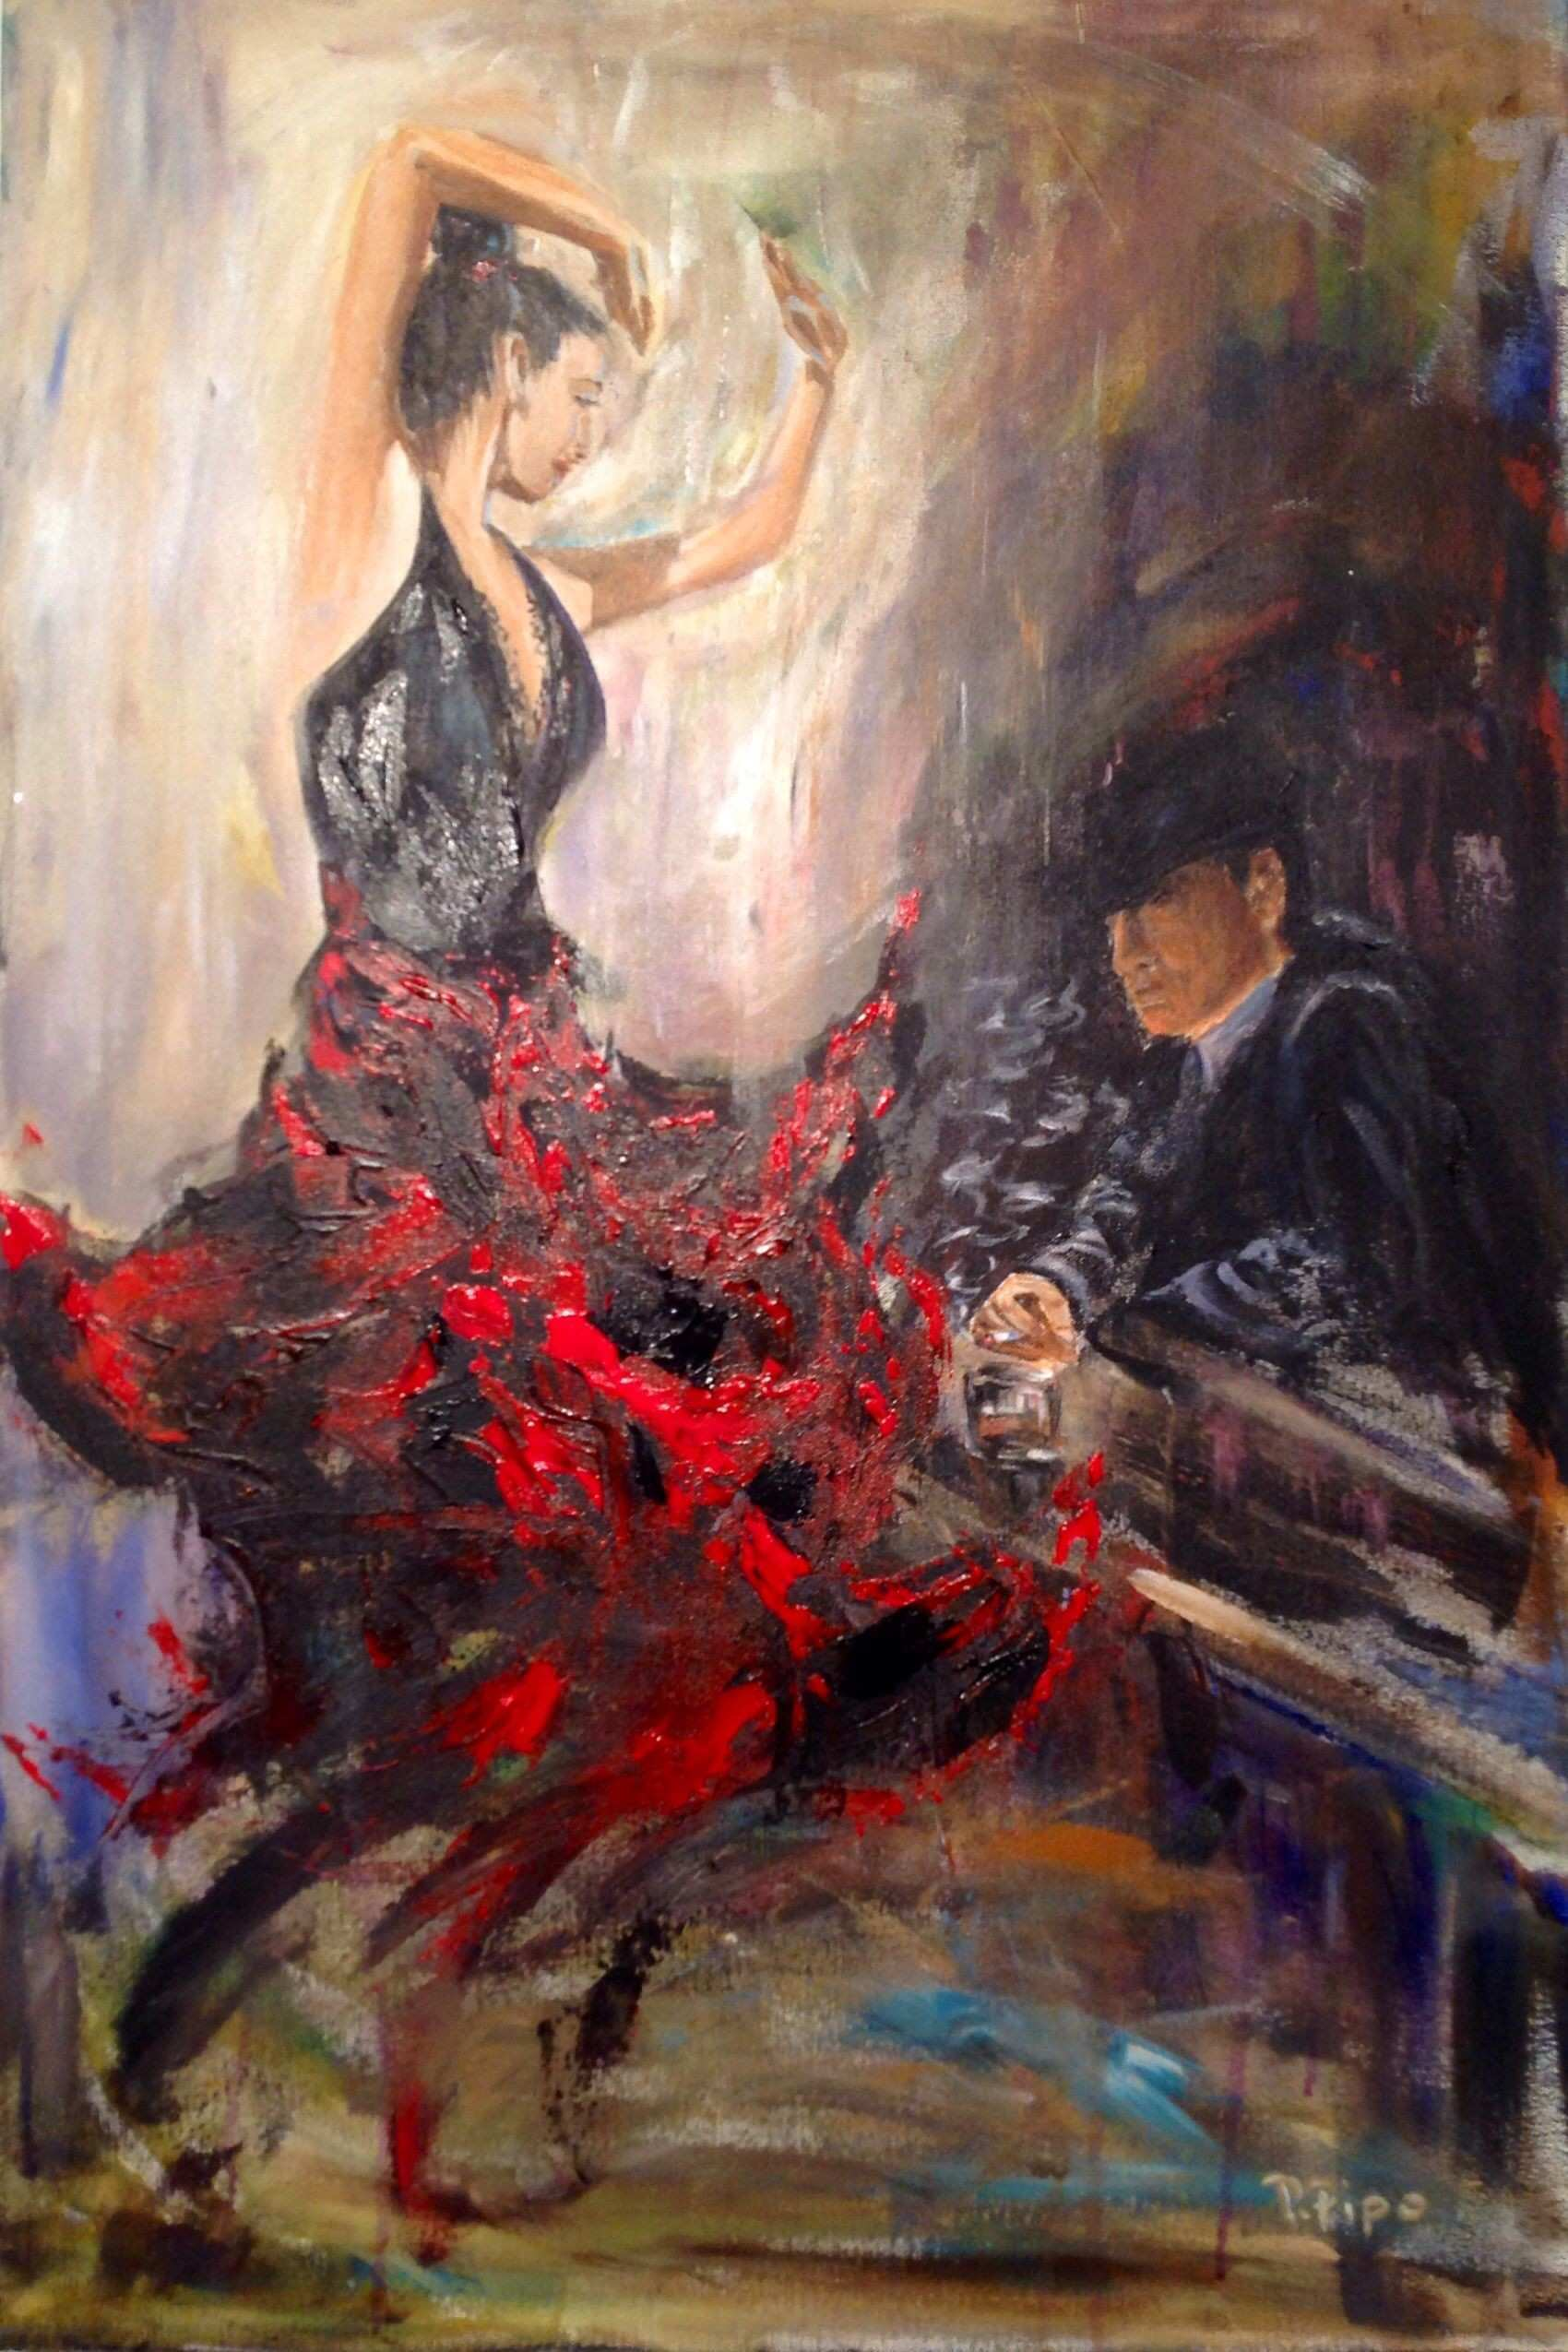 Piroska Pipo knows how to incorporate movement into her paintings